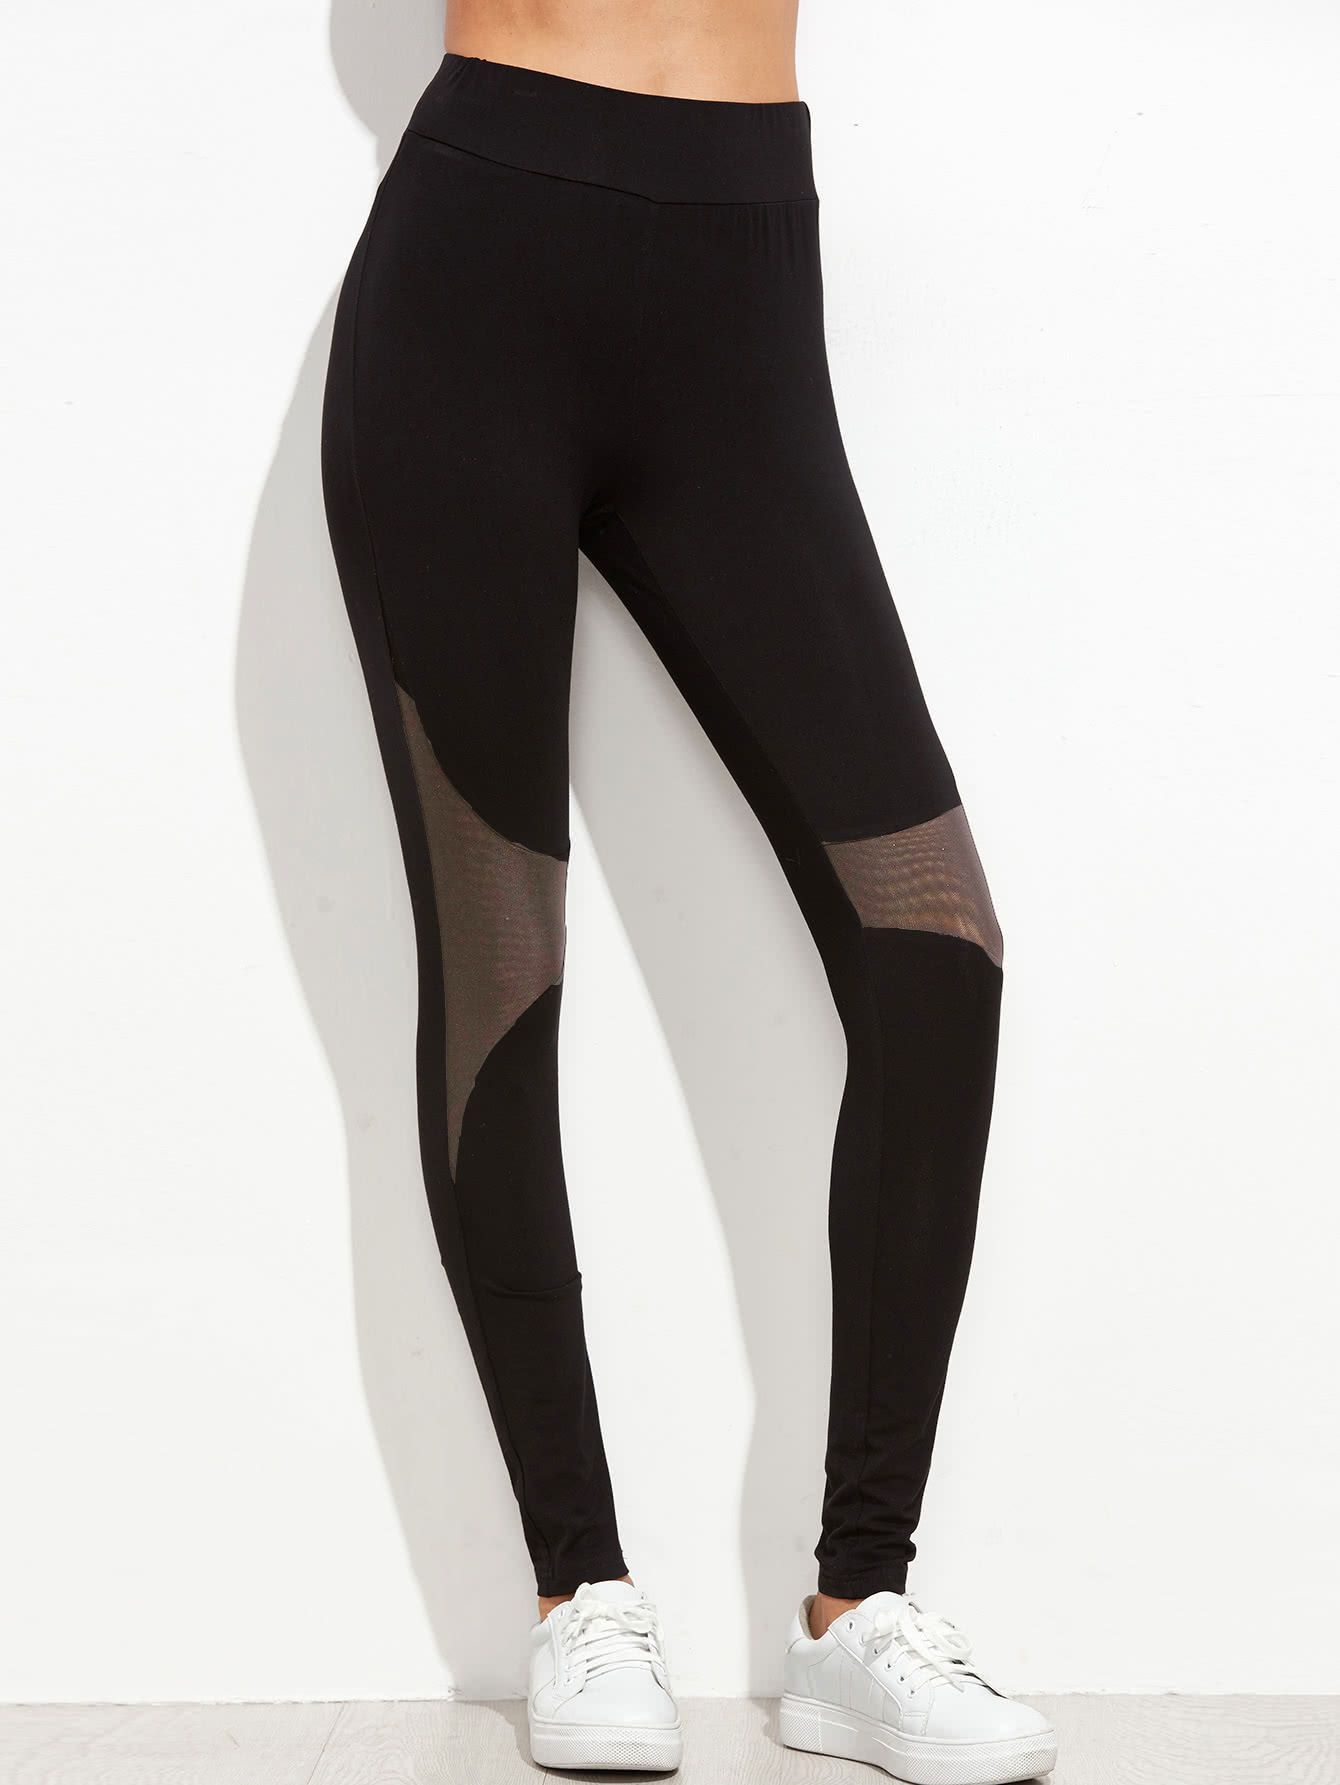 84912ad4d3831 Shop Black Contrast Mesh Panel Leggings online. SheIn offers Black Contrast  Mesh Panel Leggings & more to fit your fashionable needs.